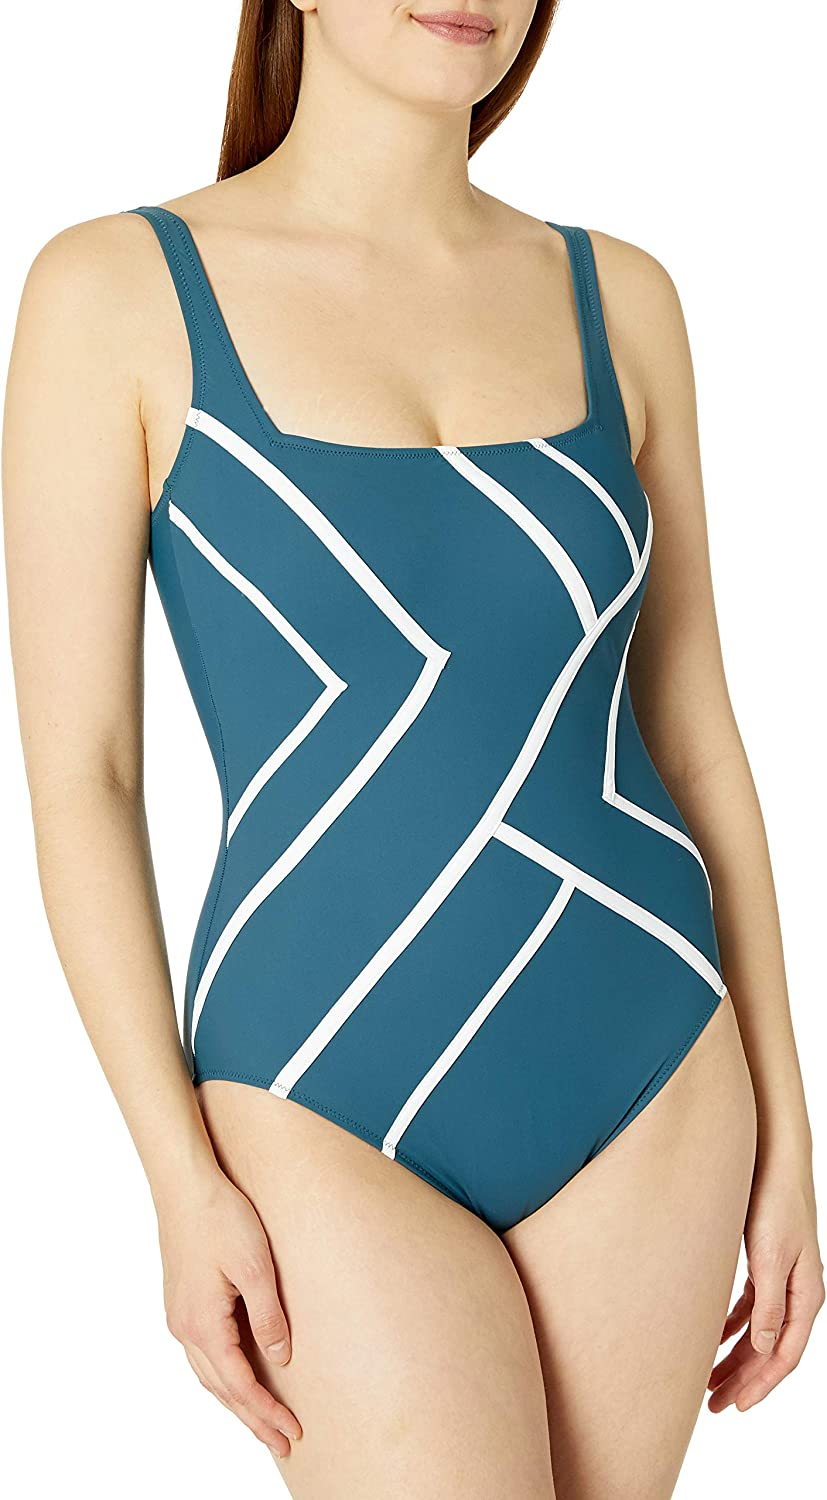 Gottex Women's Piped Shaped Square List price Super beauty product restock quality top Swimsuit One Piece Neck